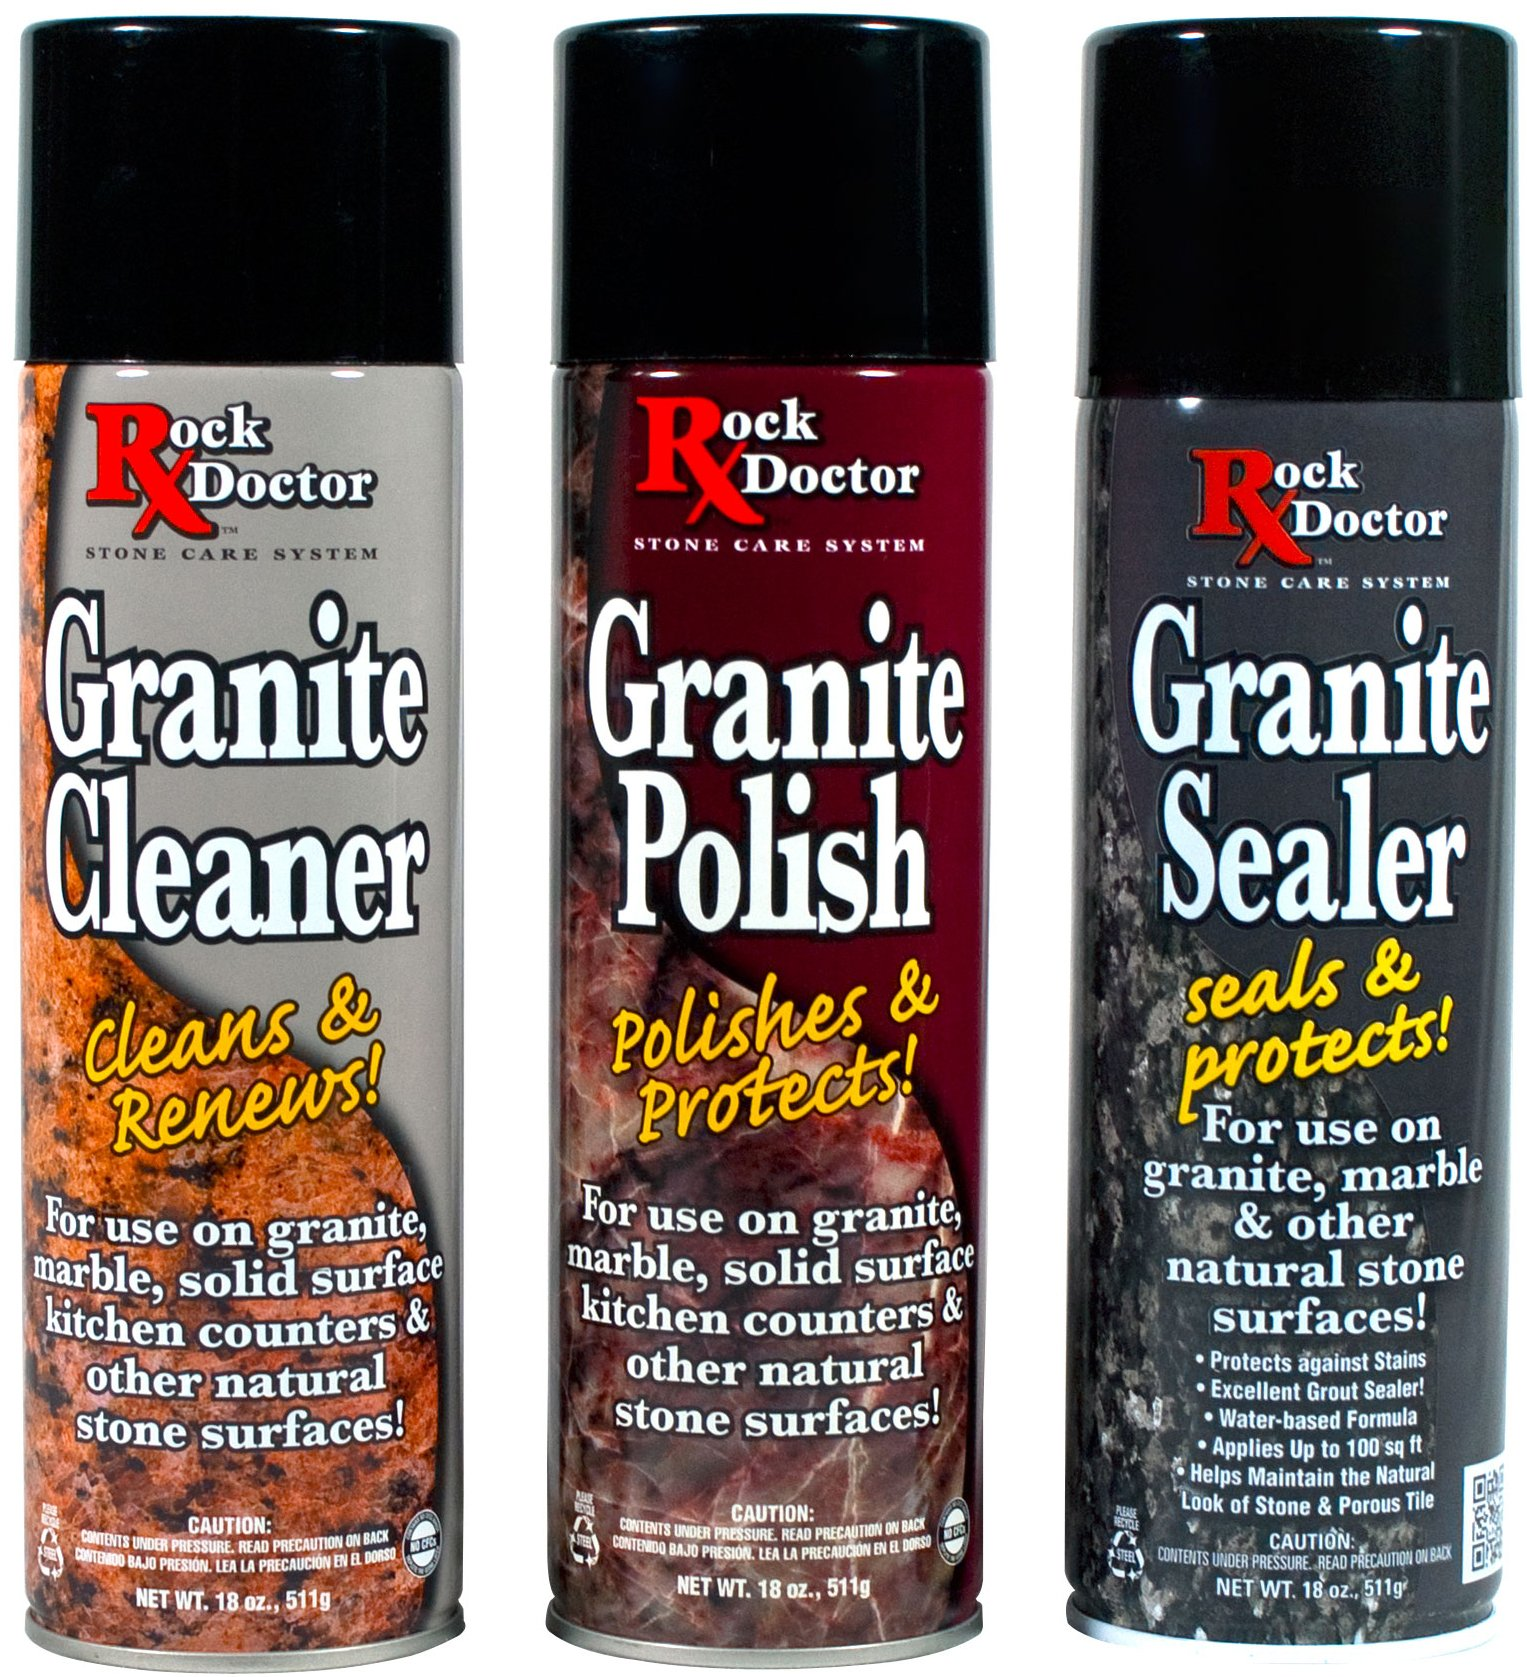 Rock Doctor Granite Care Kit, 3 Piece Maintenance Stone Care Combo Kit - All-in-One Rock Surface Care System Includes Protective Granite Cleaner, Granite Polish & Granite Sealer (18oz Each) by Rock Doctor (Image #1)